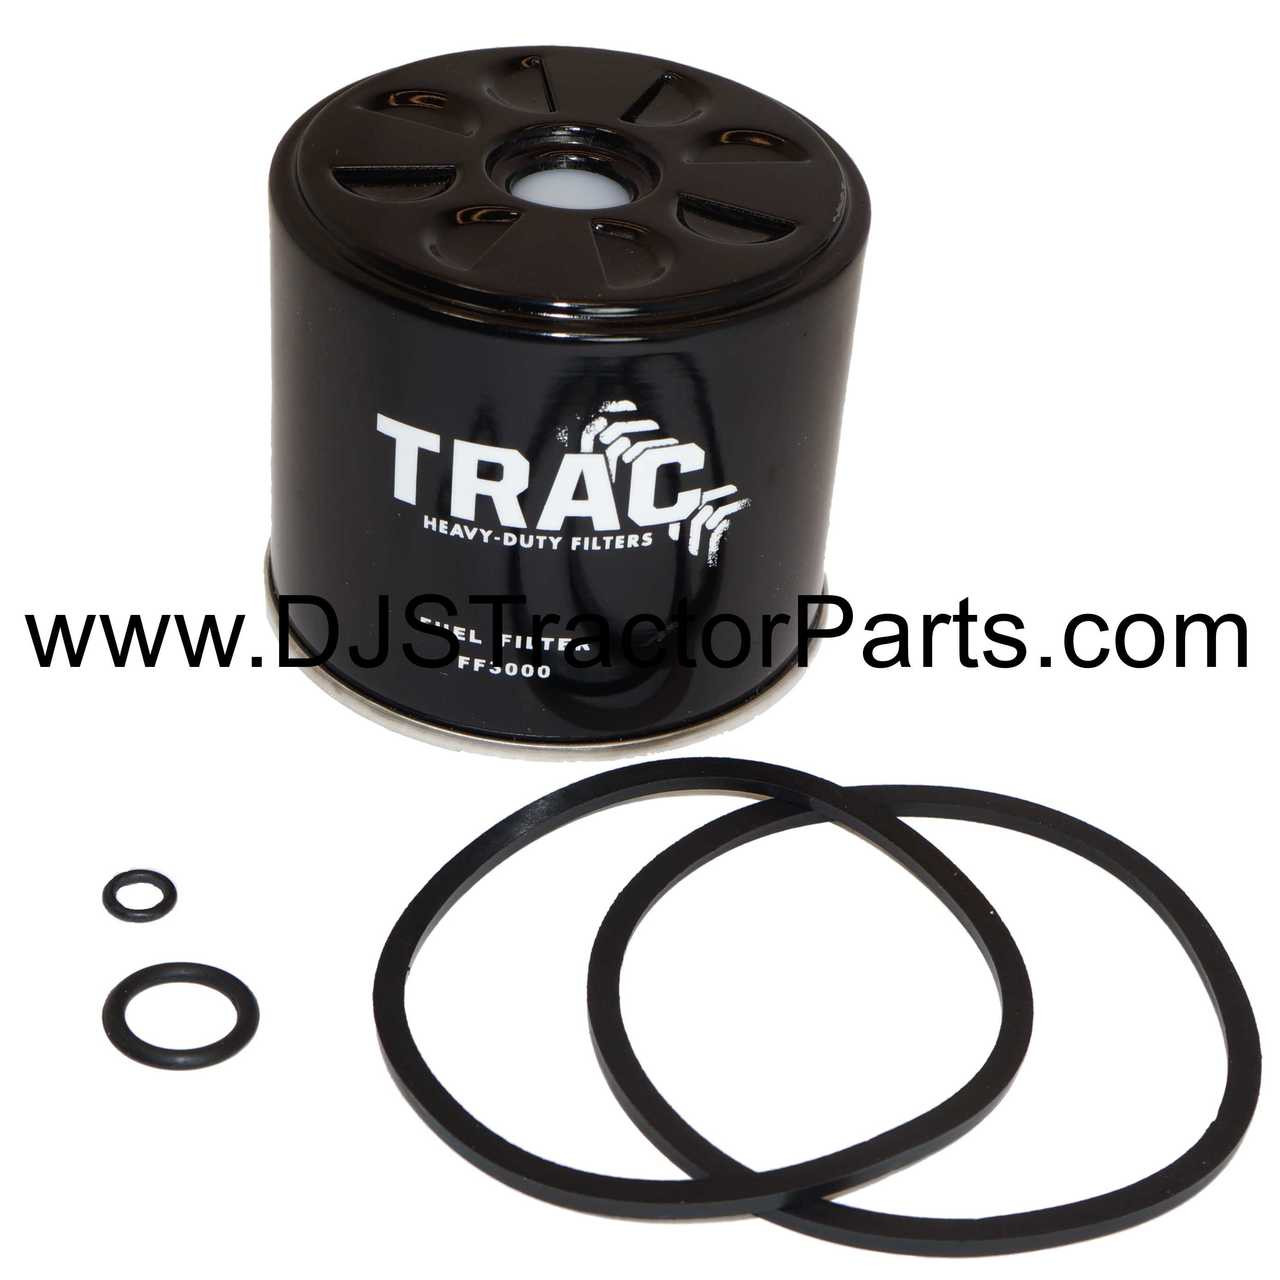 hight resolution of fuel filter element with seals for cav simms fuel filters ab 1421d